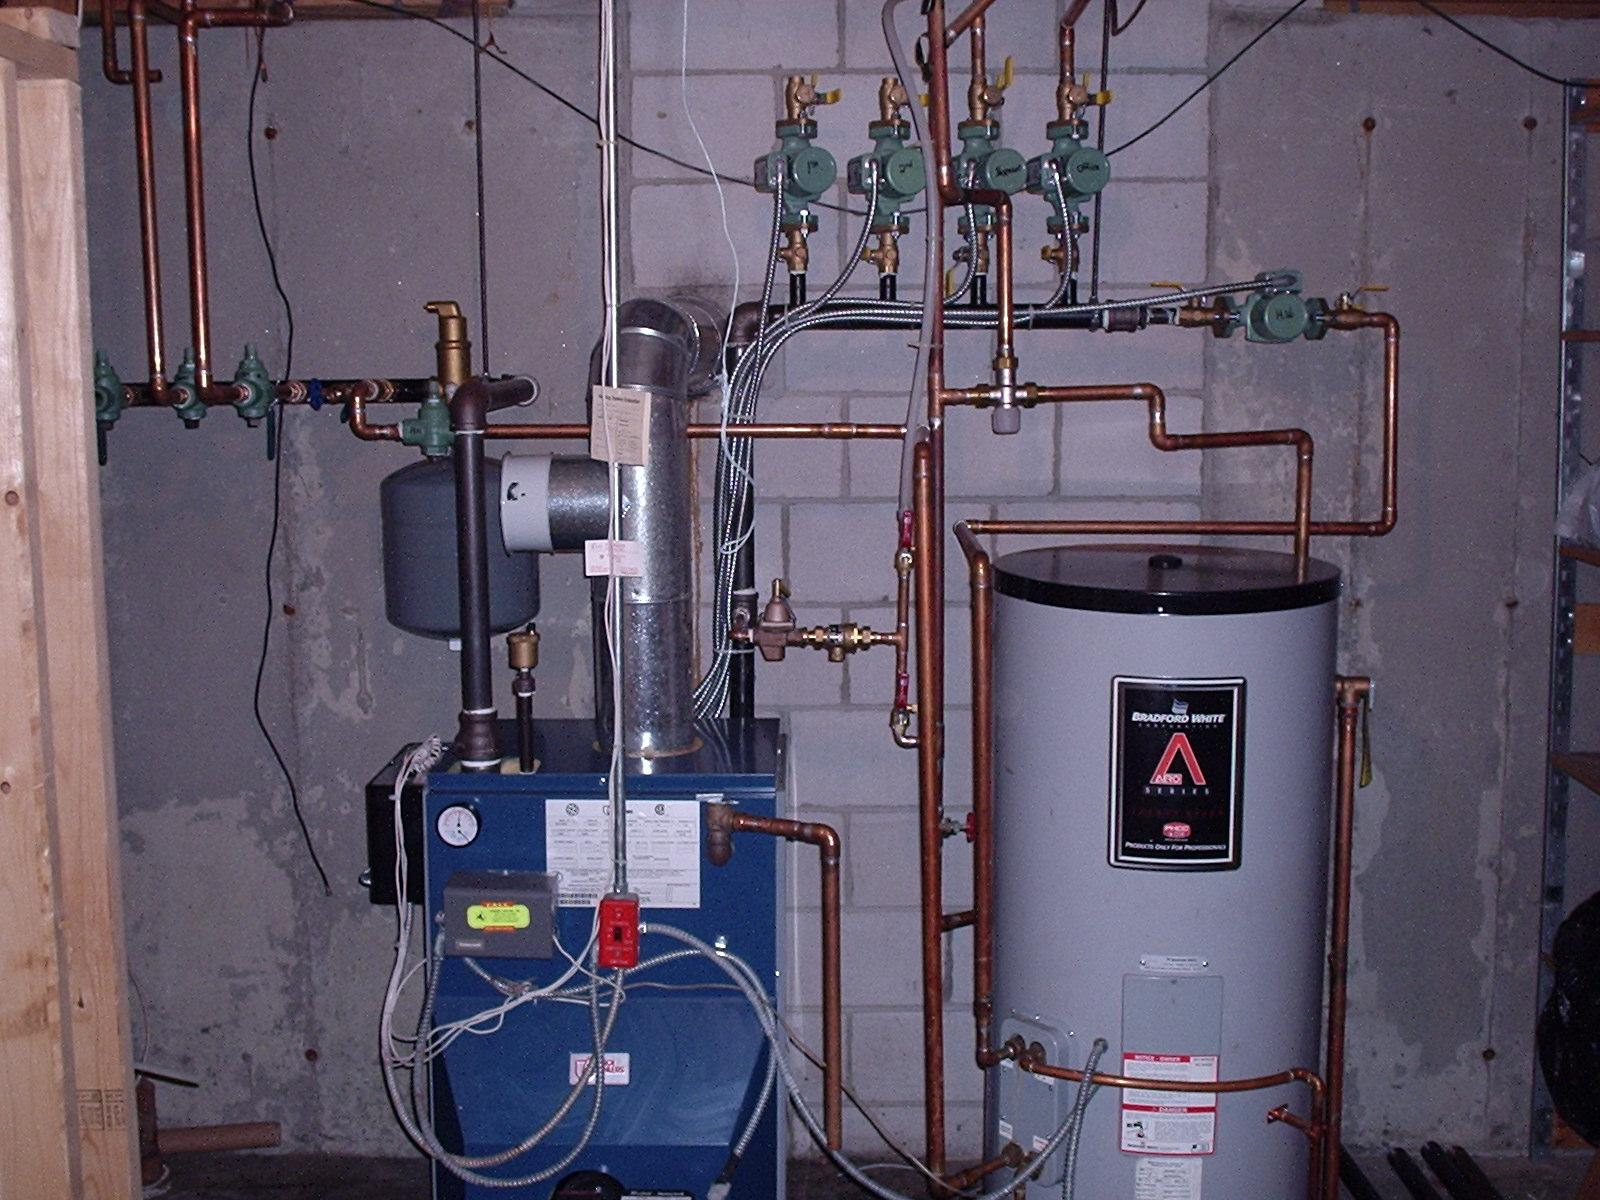 Boiler and water heater